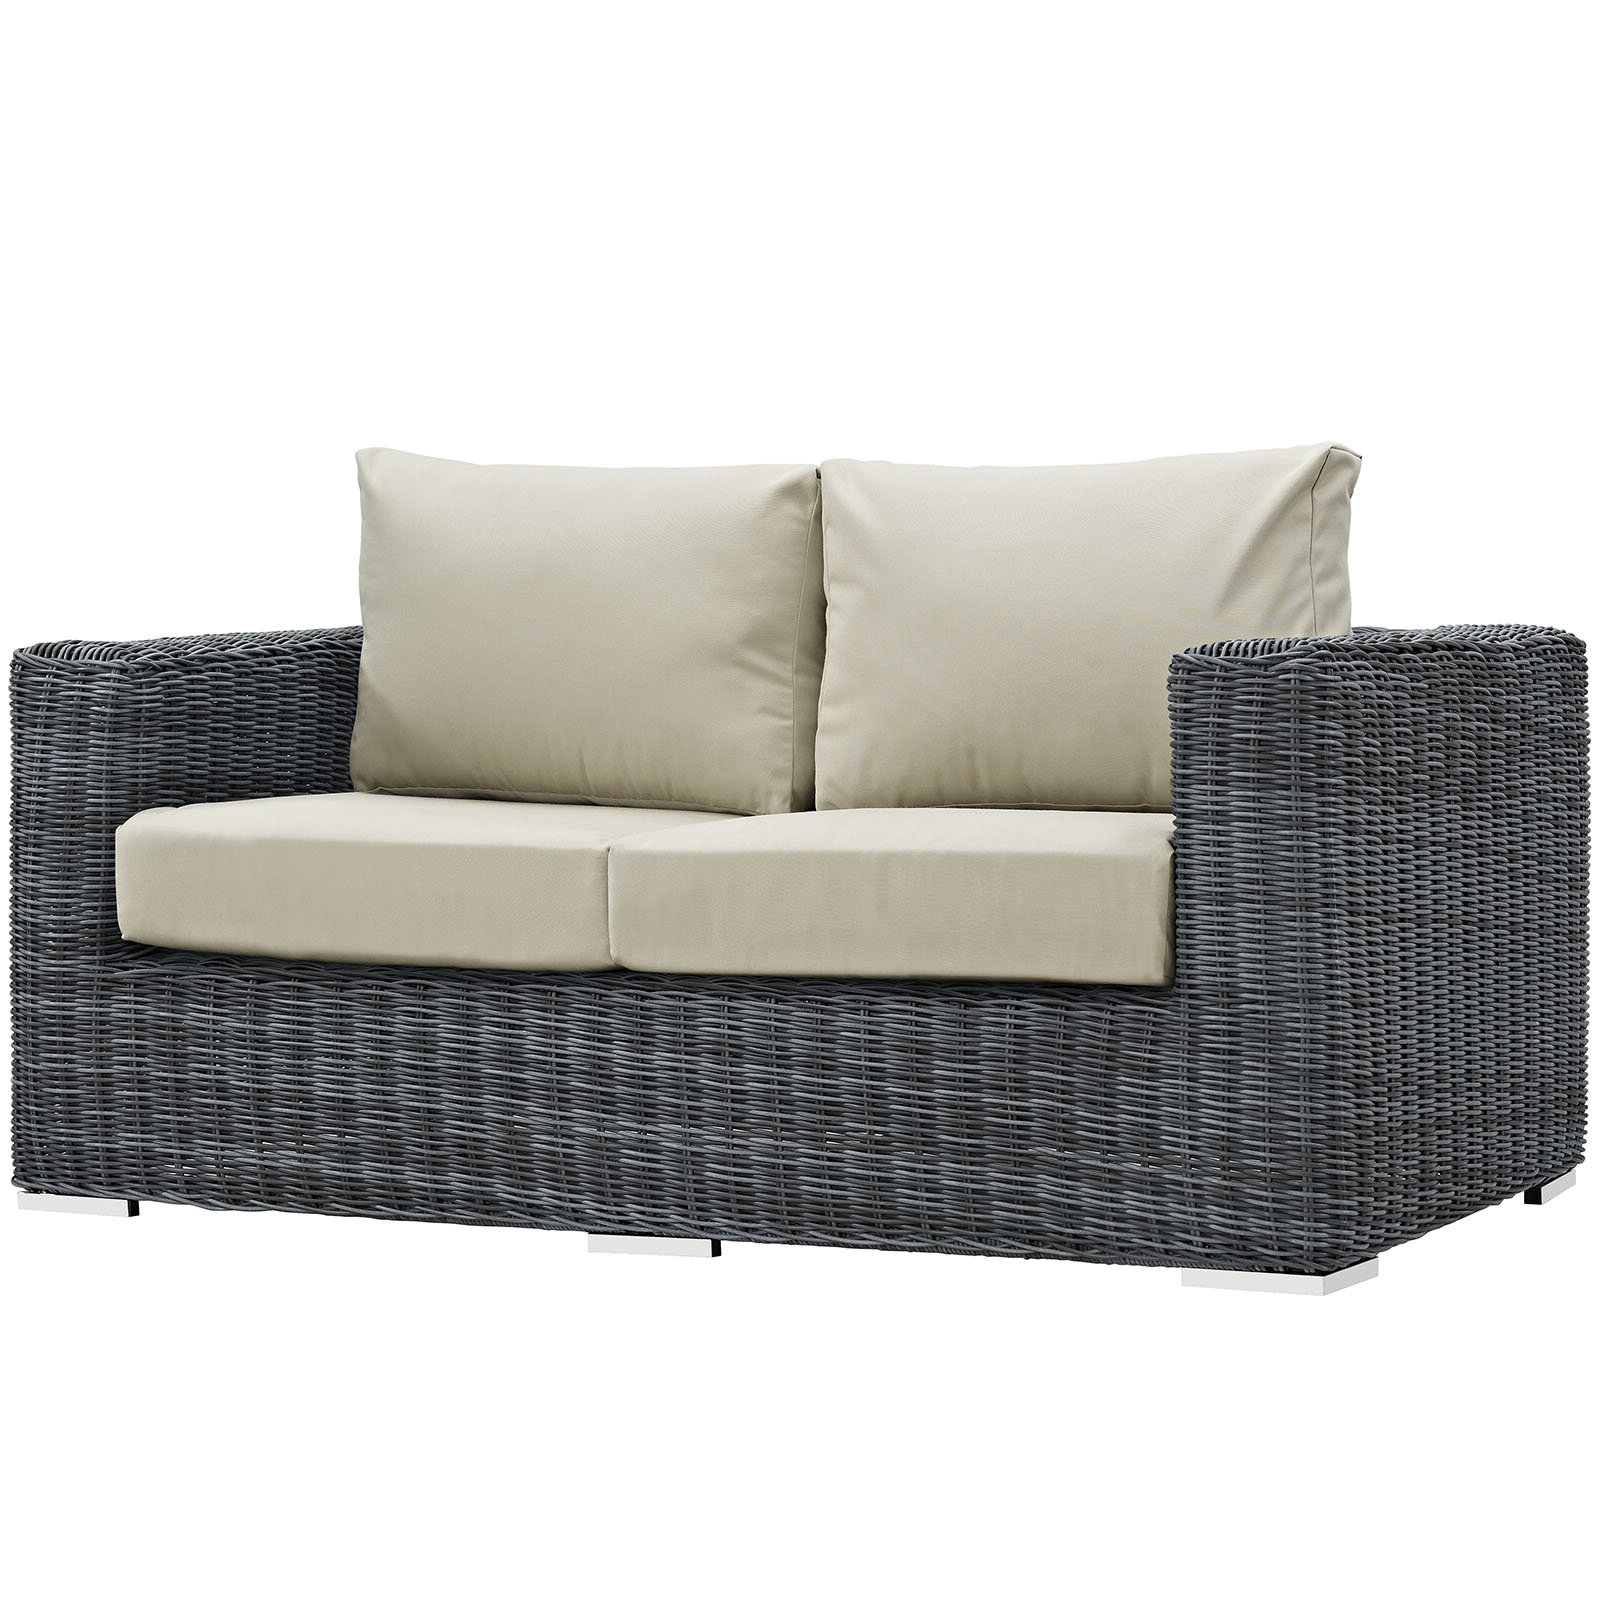 Keiran Patio Sofas With Cushions In 2019 Keiran Loveseat With Cushions (View 10 of 20)